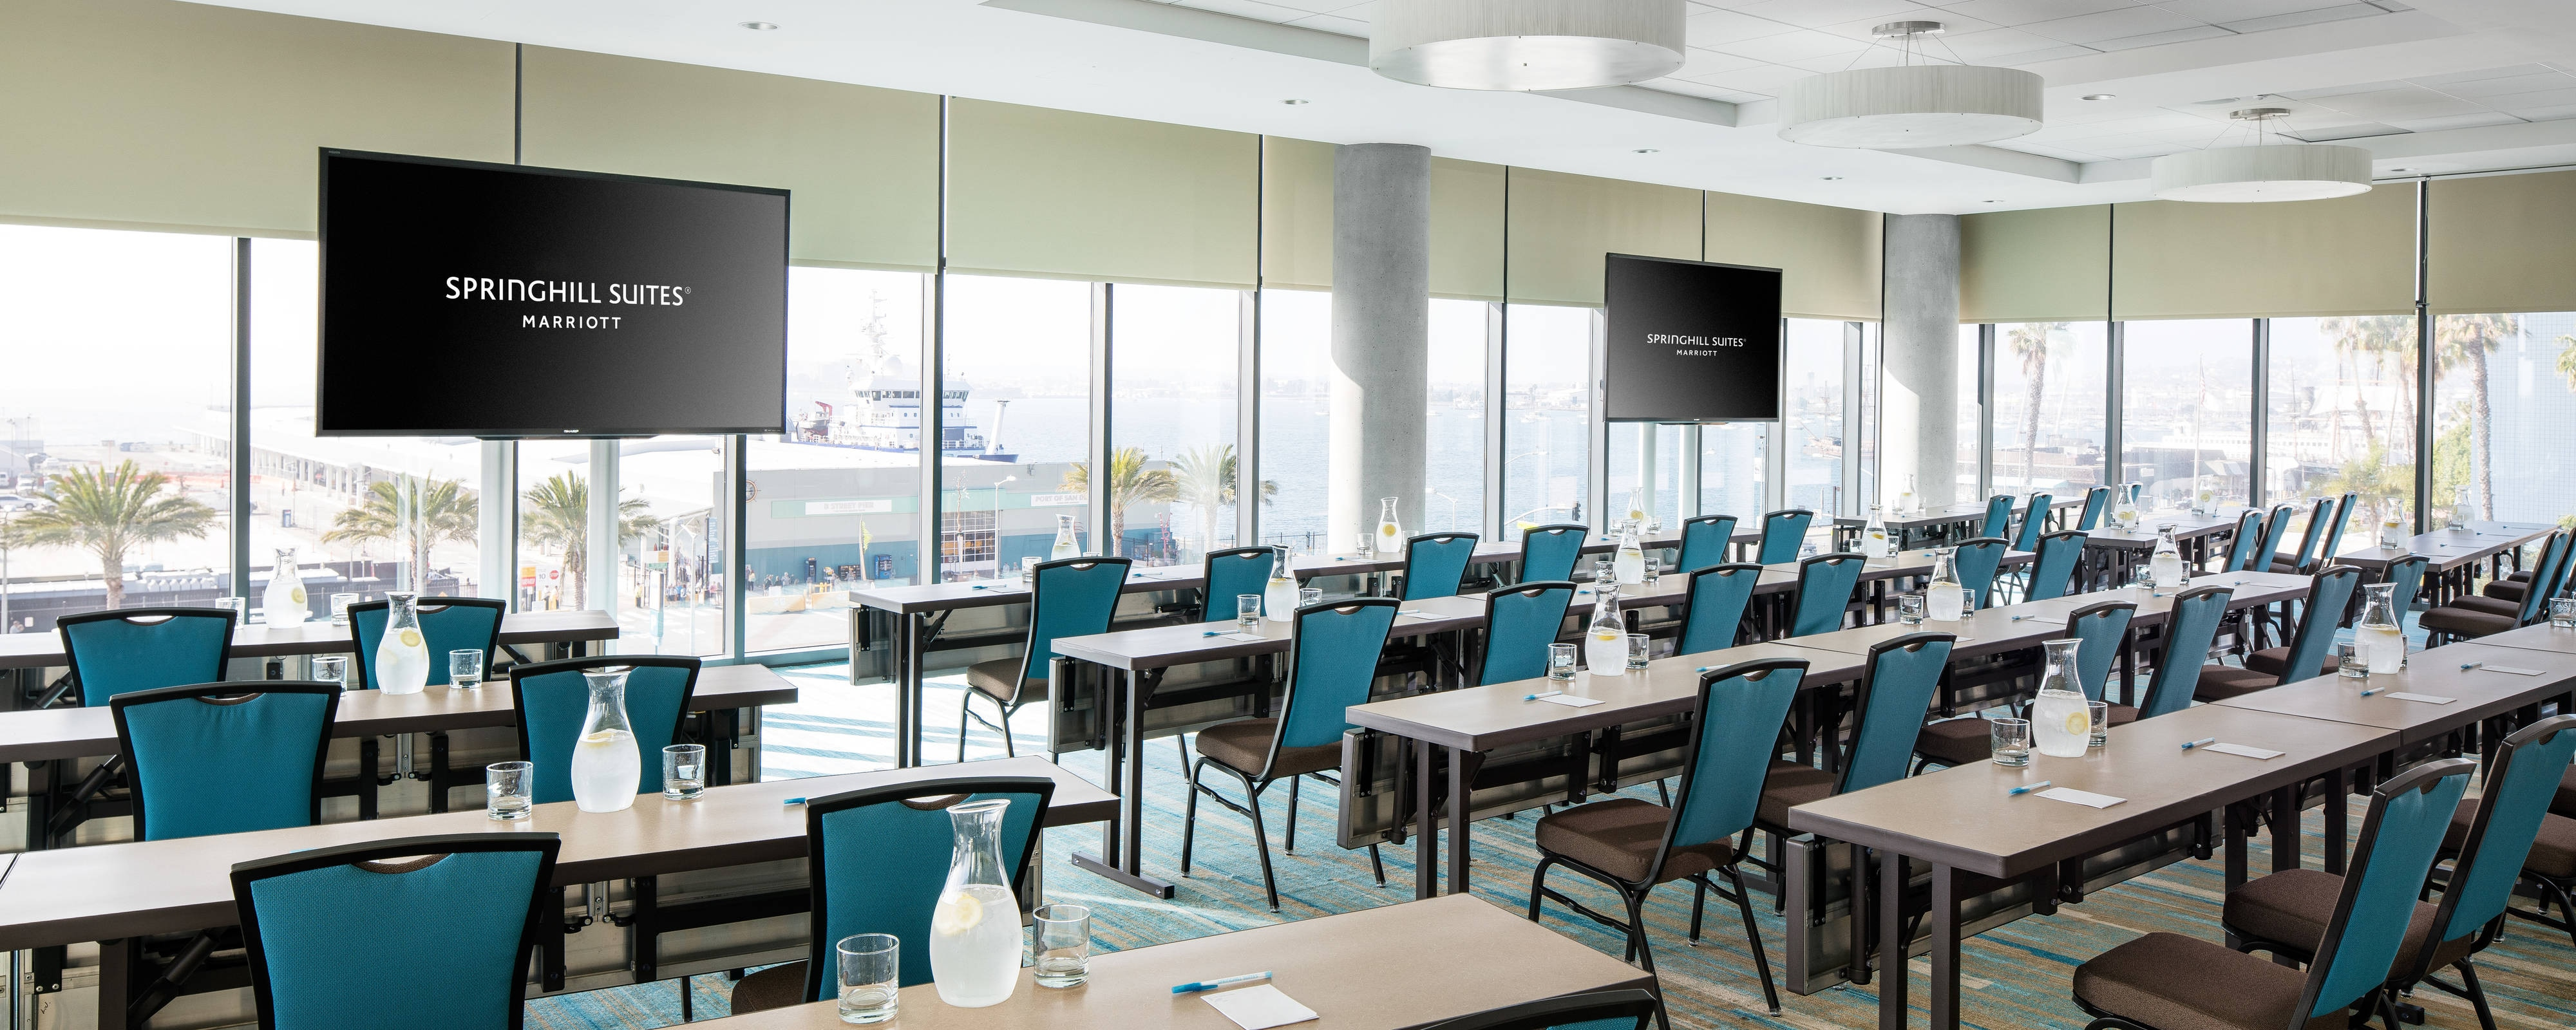 San Diego Event Spaces Springhill Suites San Diego